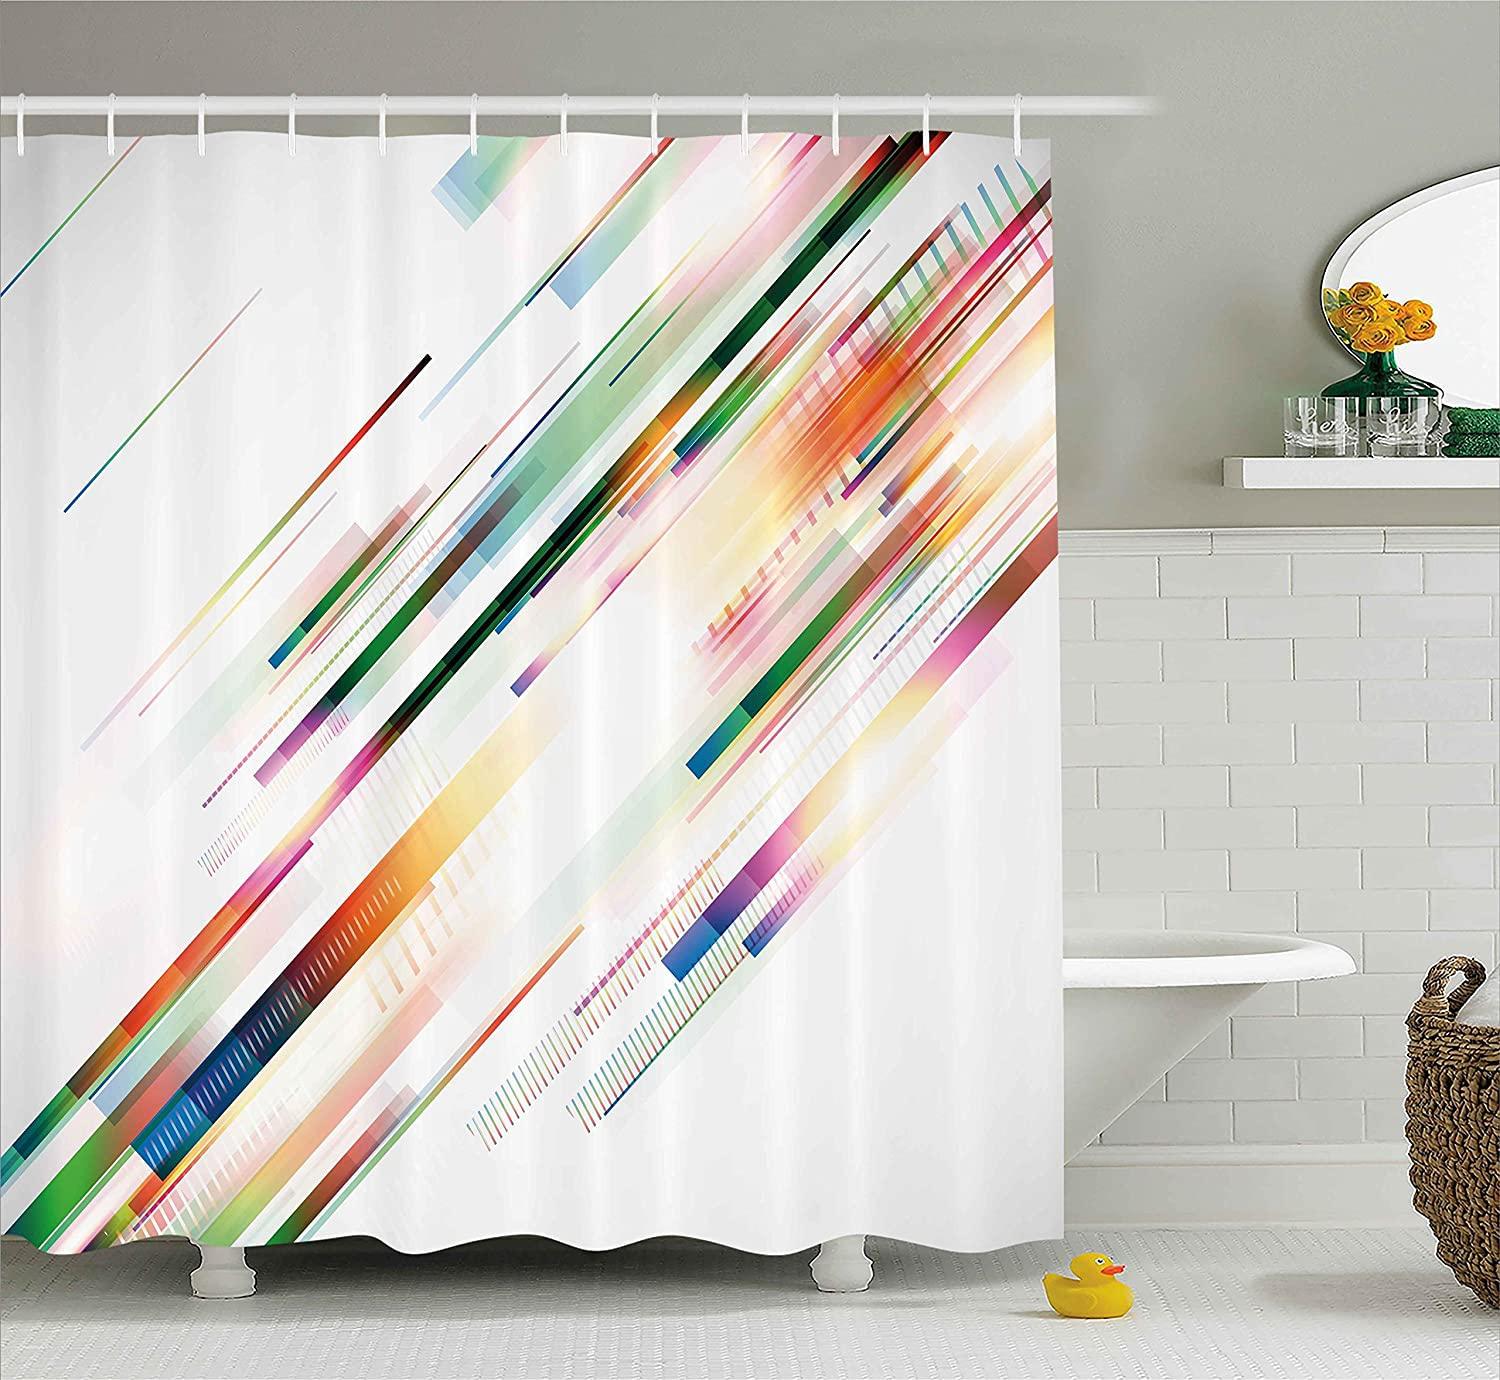 Modern Decor Shower Curtain by Ambesonne, Abstract Seamless Geometric Design with Lines Light Rays Detailed Image, Fabric Bathroom Decor Set with Hooks, 75 Inches Long, Multicolor